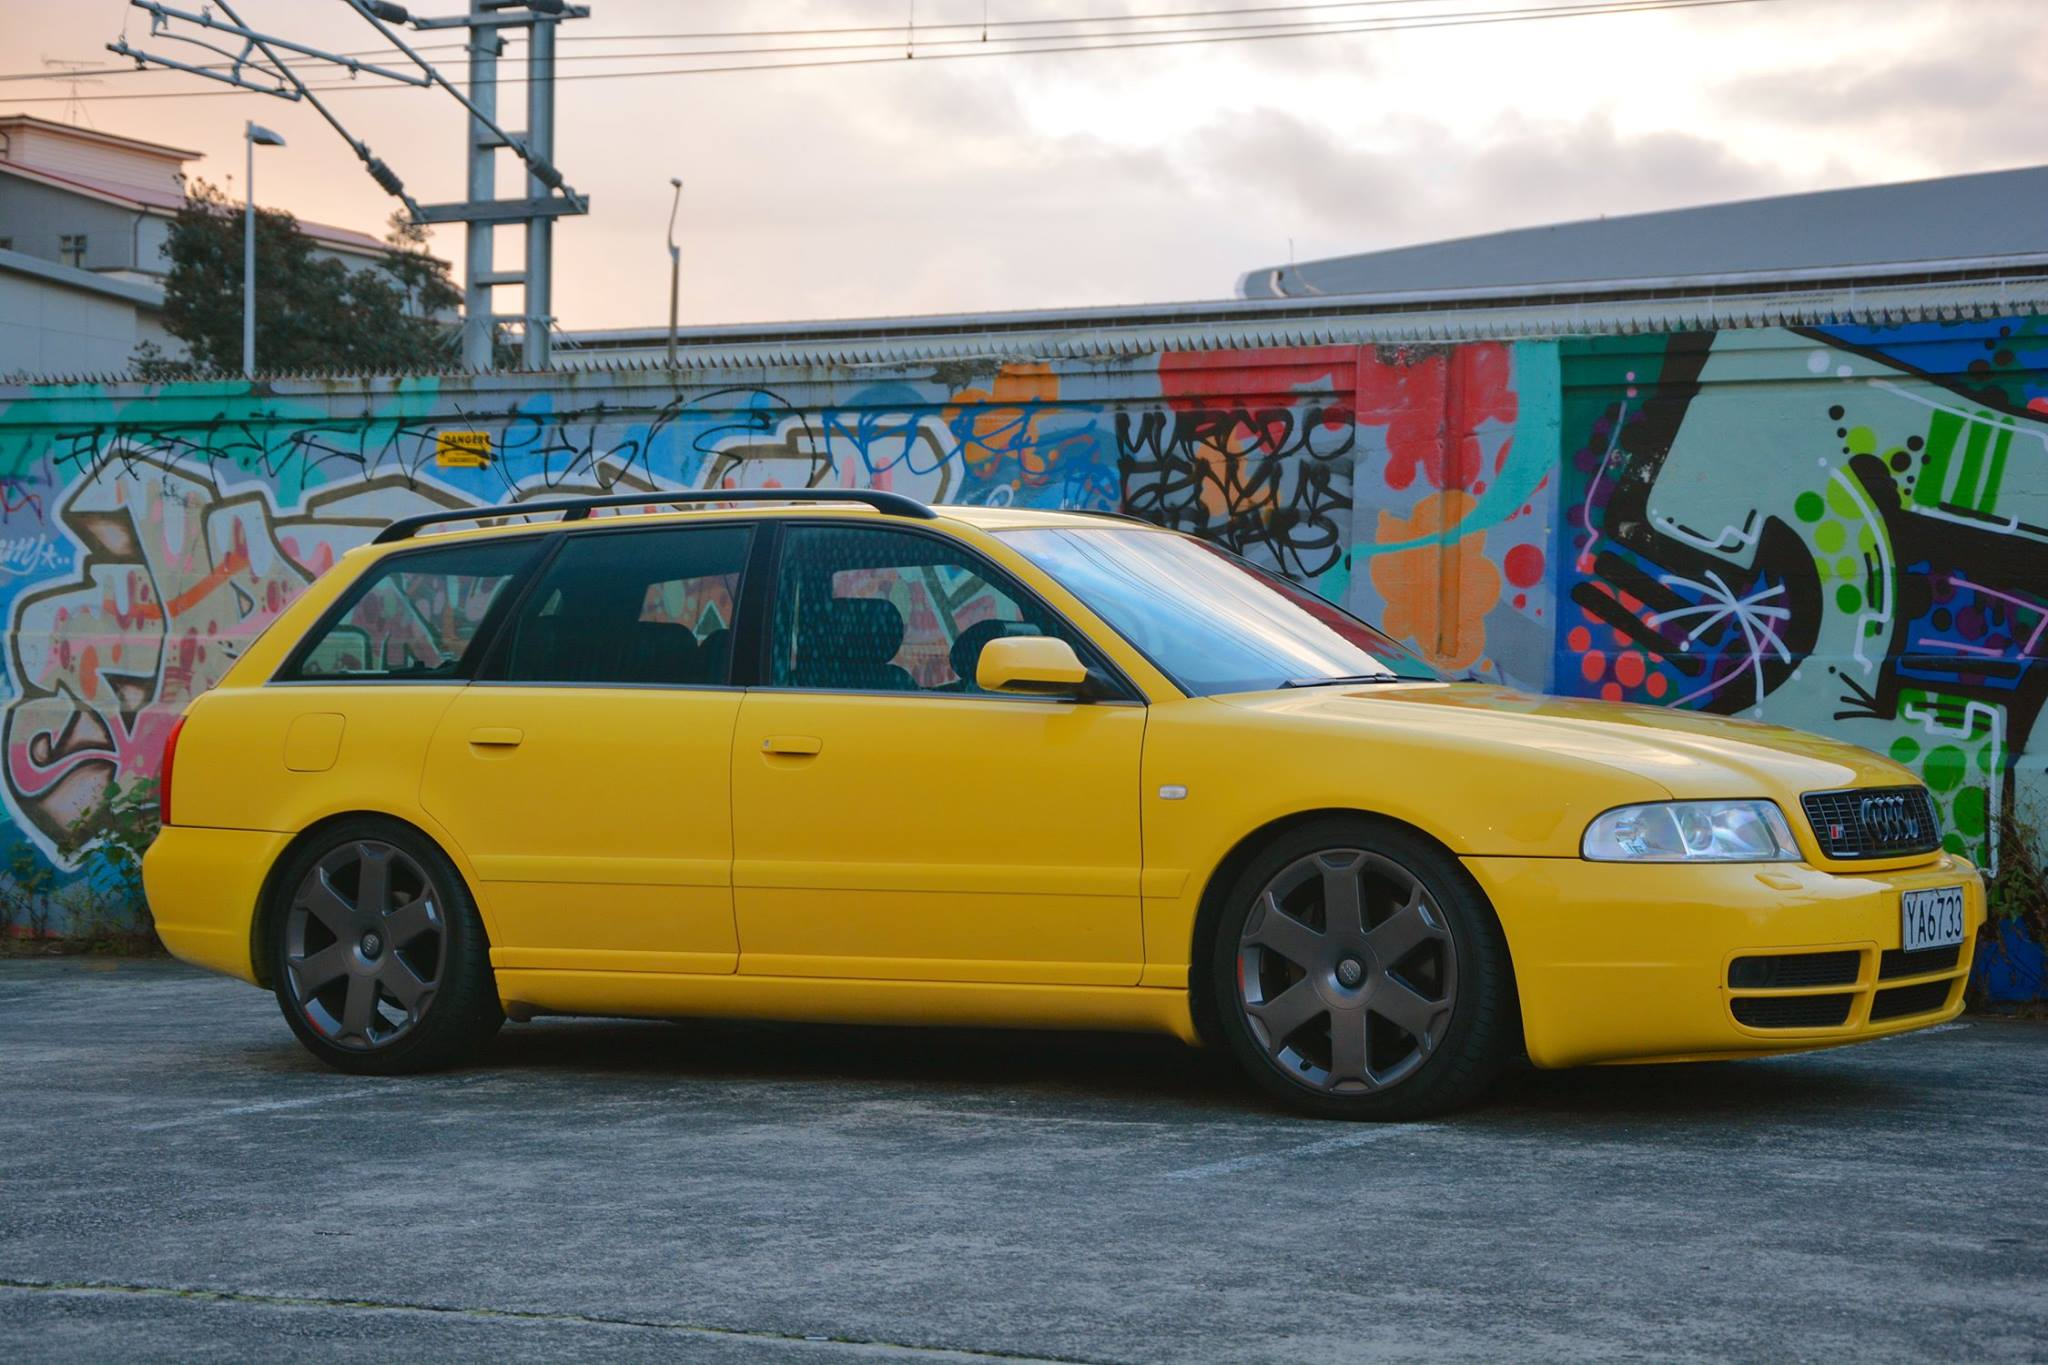 File Imola Yellow Wagon B5 S4 Jpg Wikimedia Commons